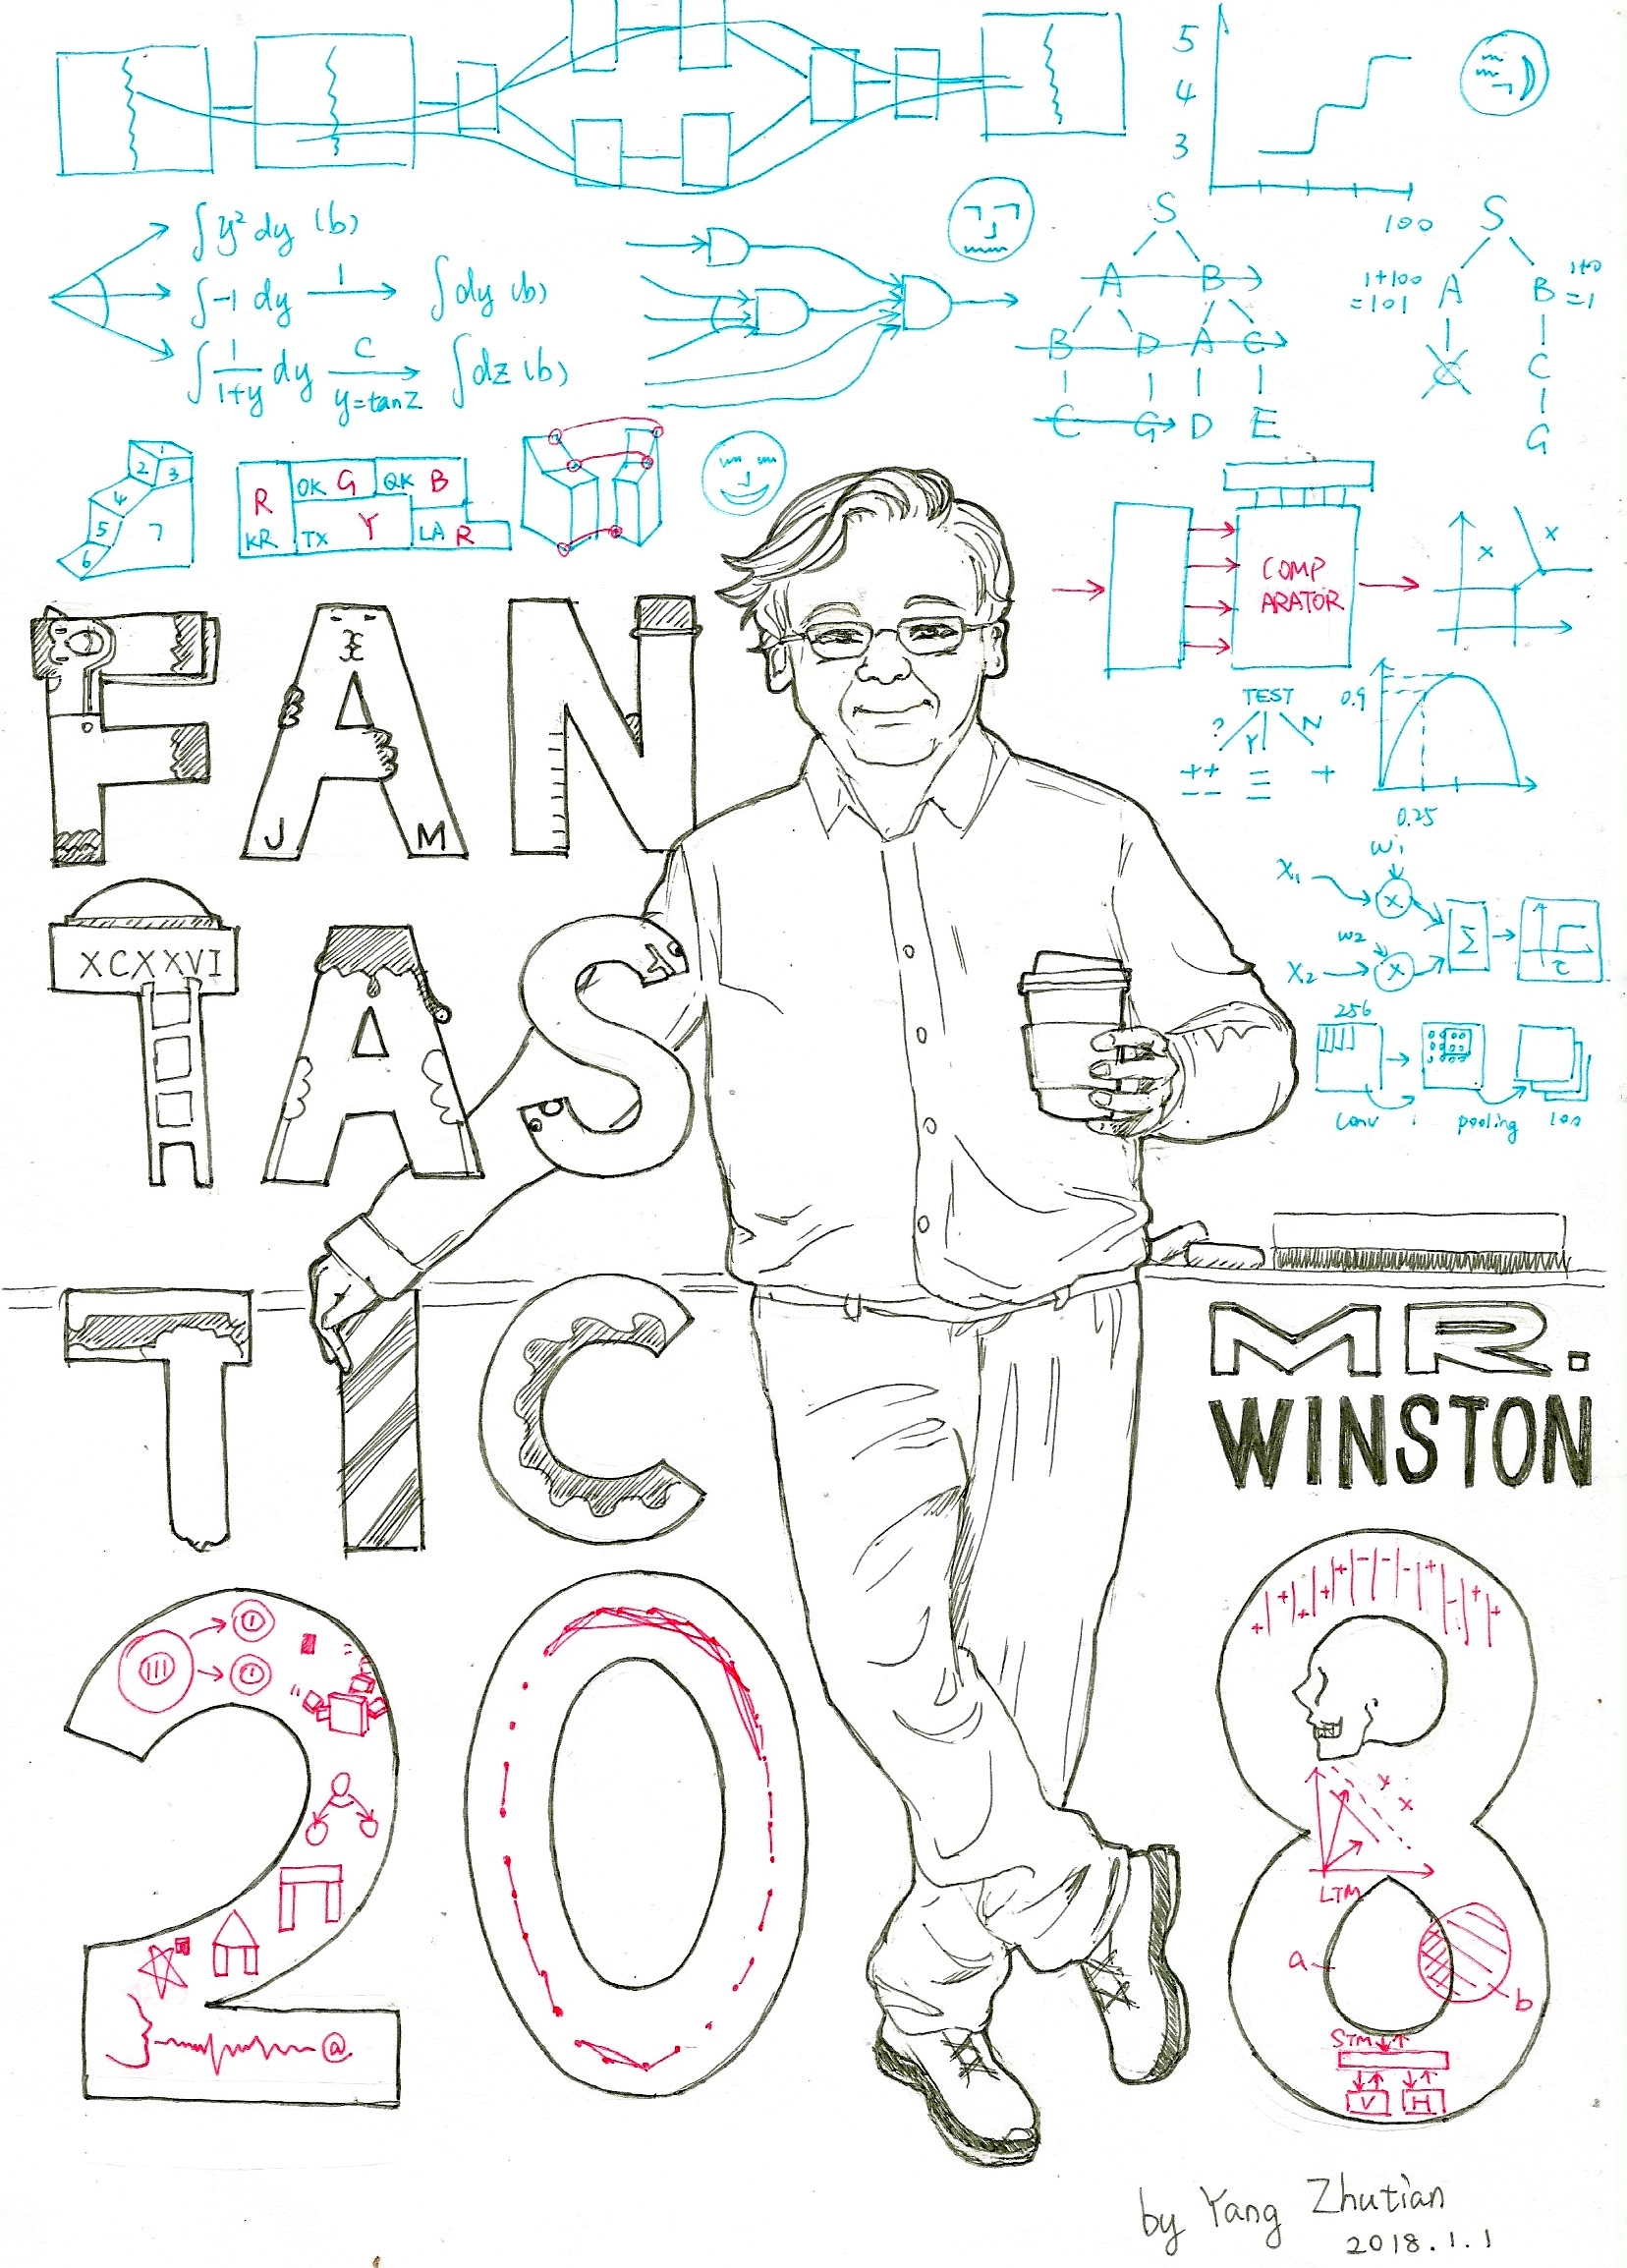 Fantastic Prof Winston and 6.034